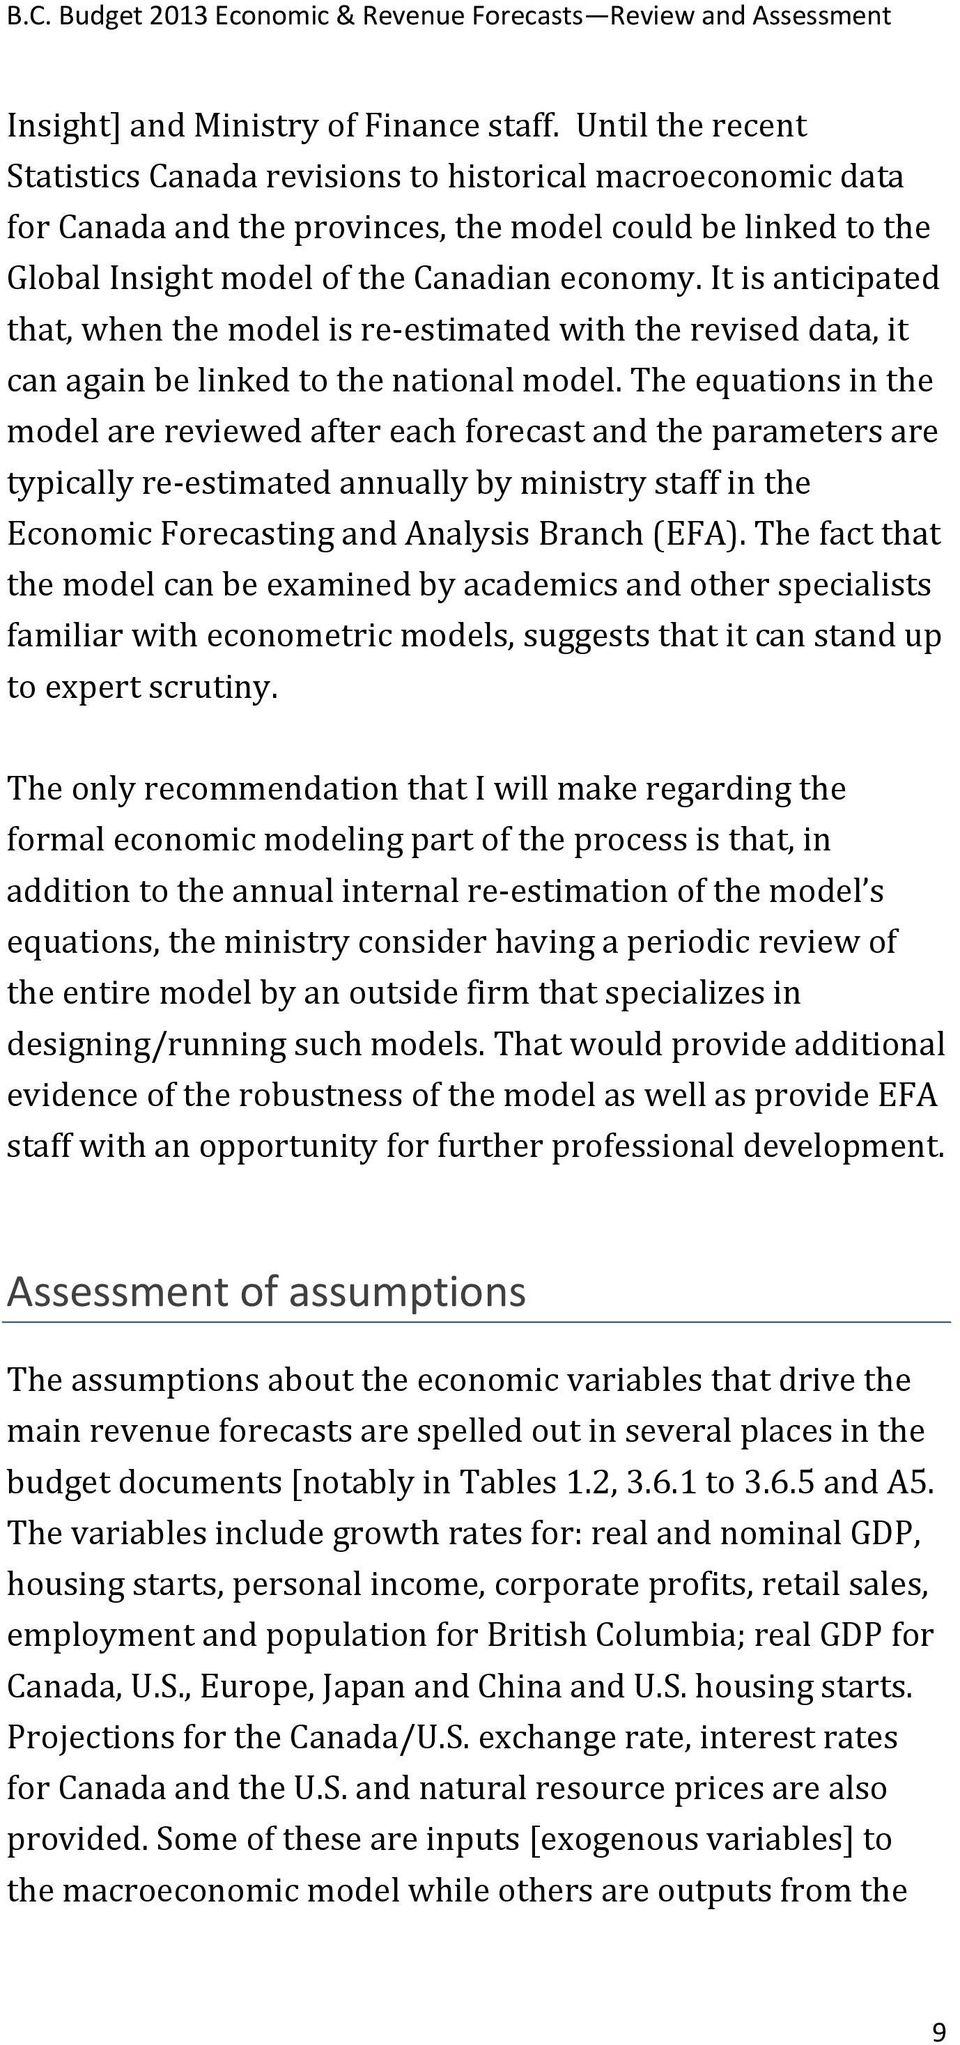 It is anticipated that, when the model is re estimated with the revised data, it can again be linked to the national model.